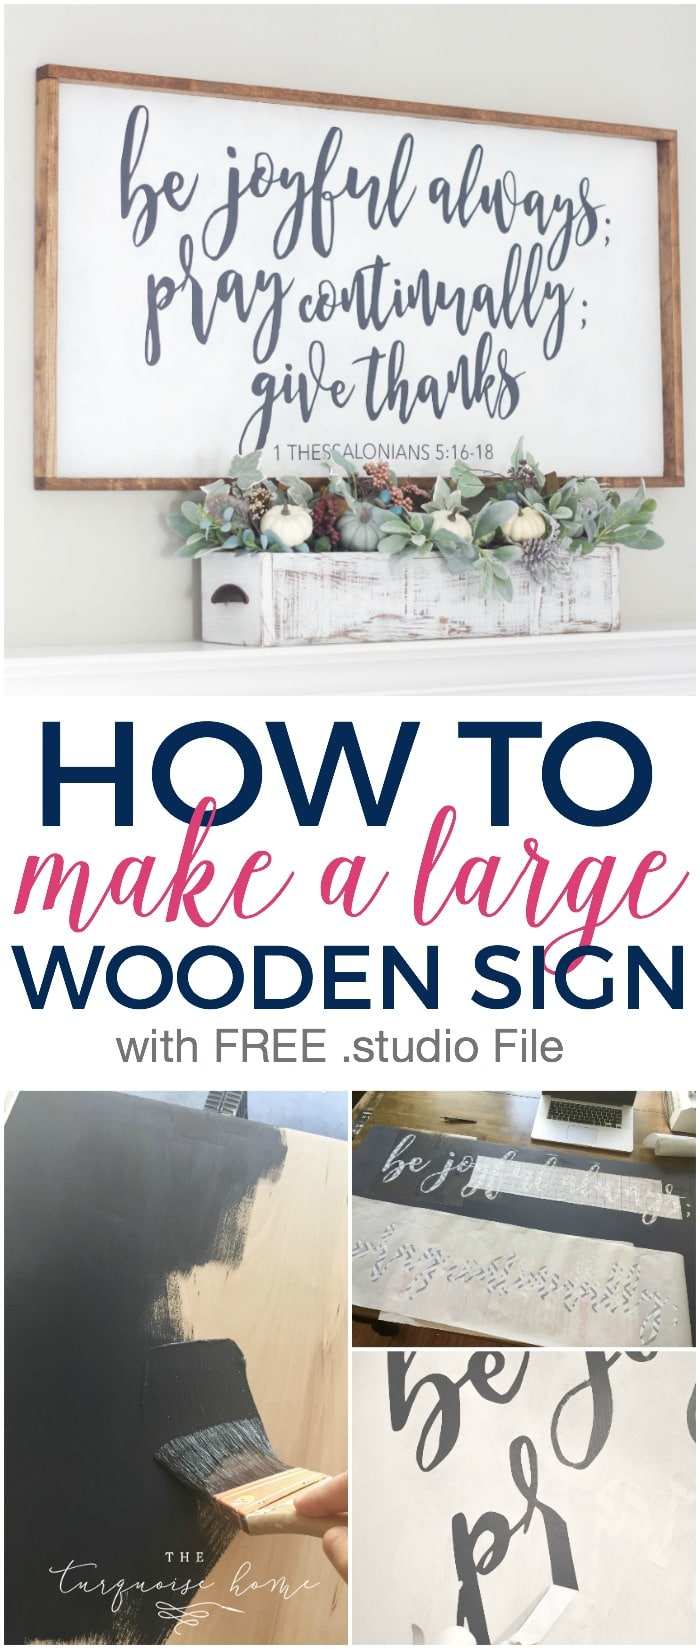 How to Make a Large Wooden Sign | The Turquoise Home